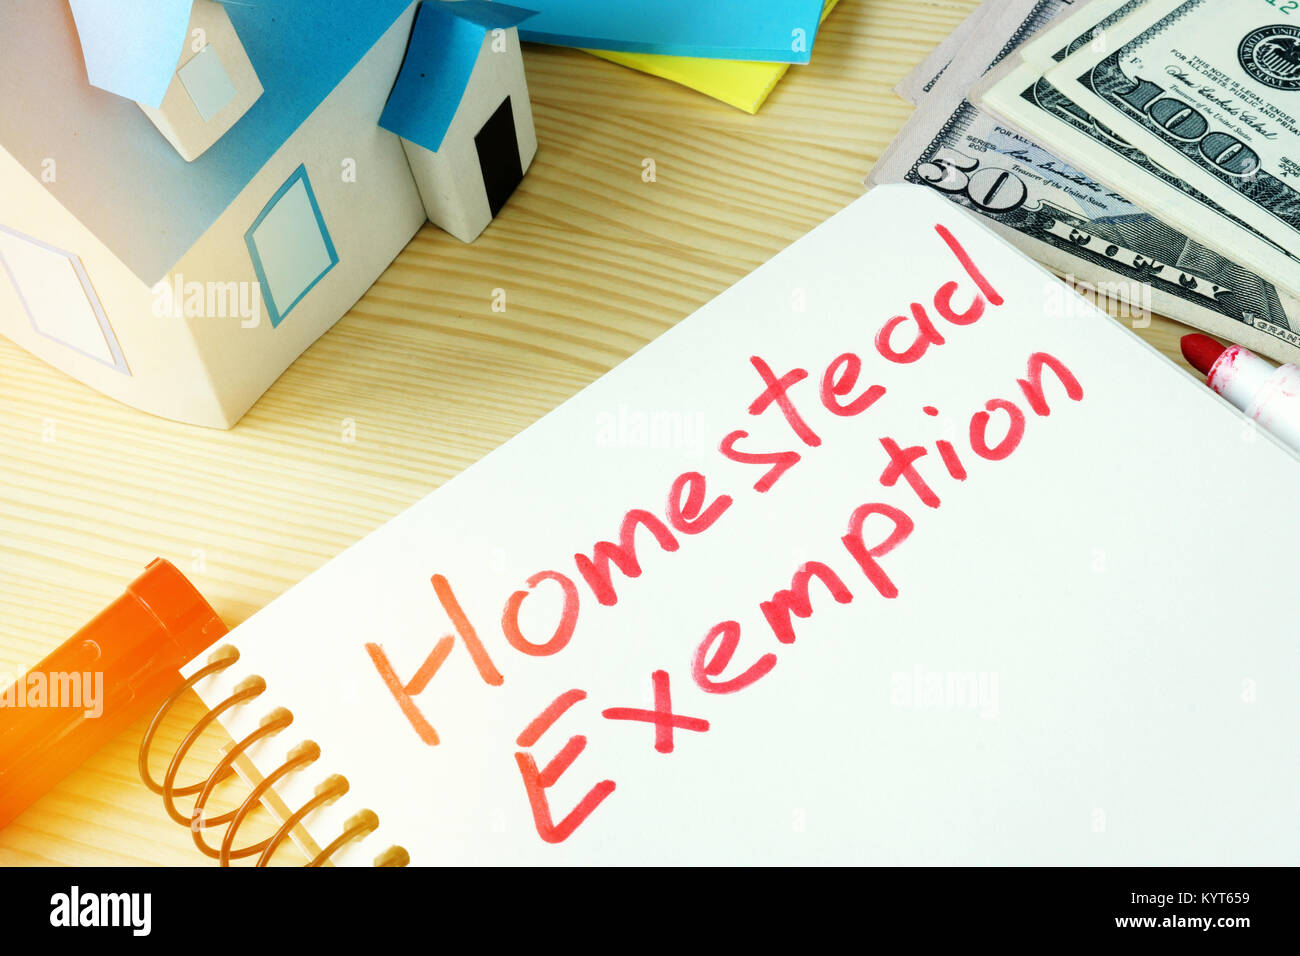 Man writing Homestead Exemption in a note pad. - Stock Image